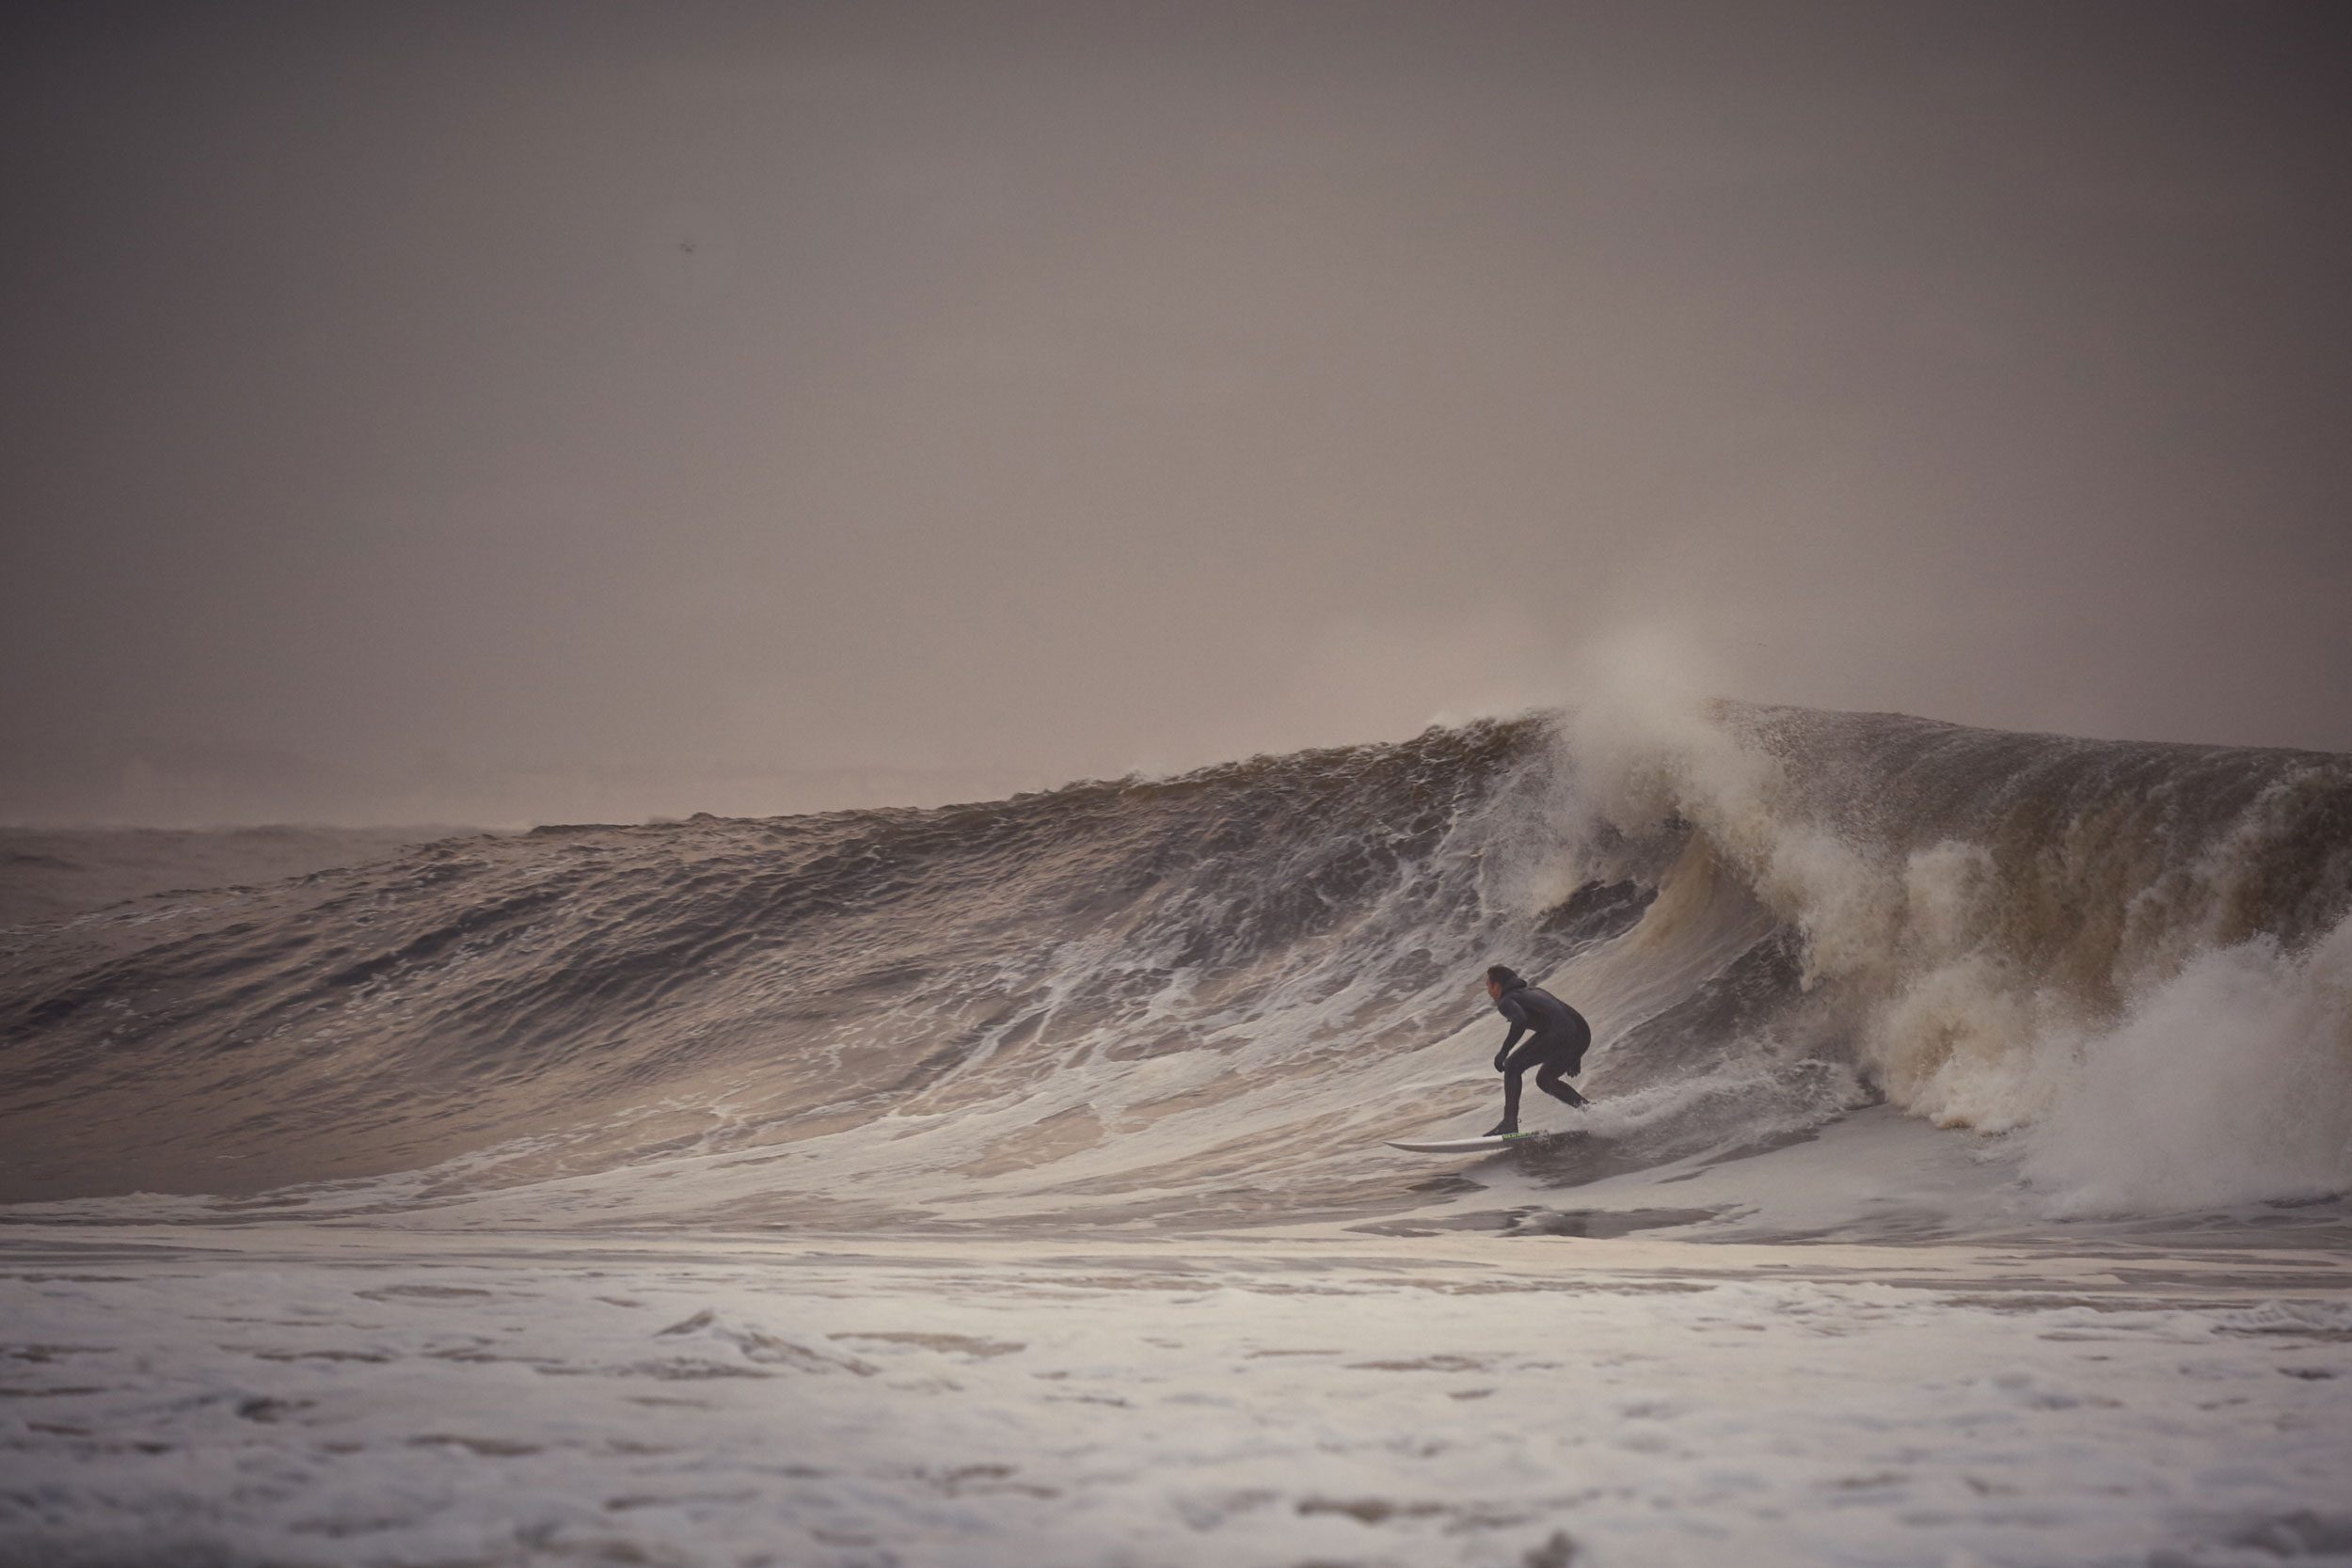 A surfer catches at wave during dusk.